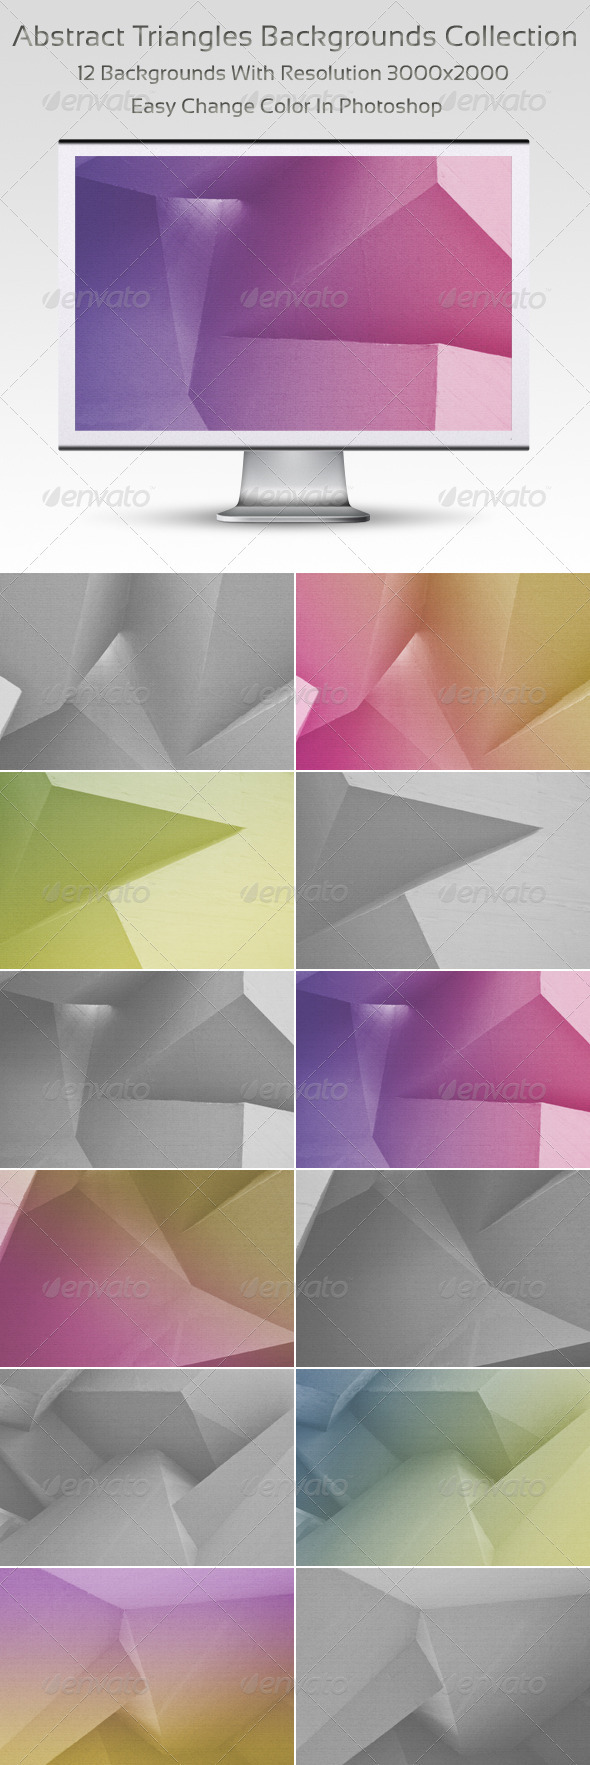 Abstract Triangles Backgrounds Collection - Backgrounds Graphics